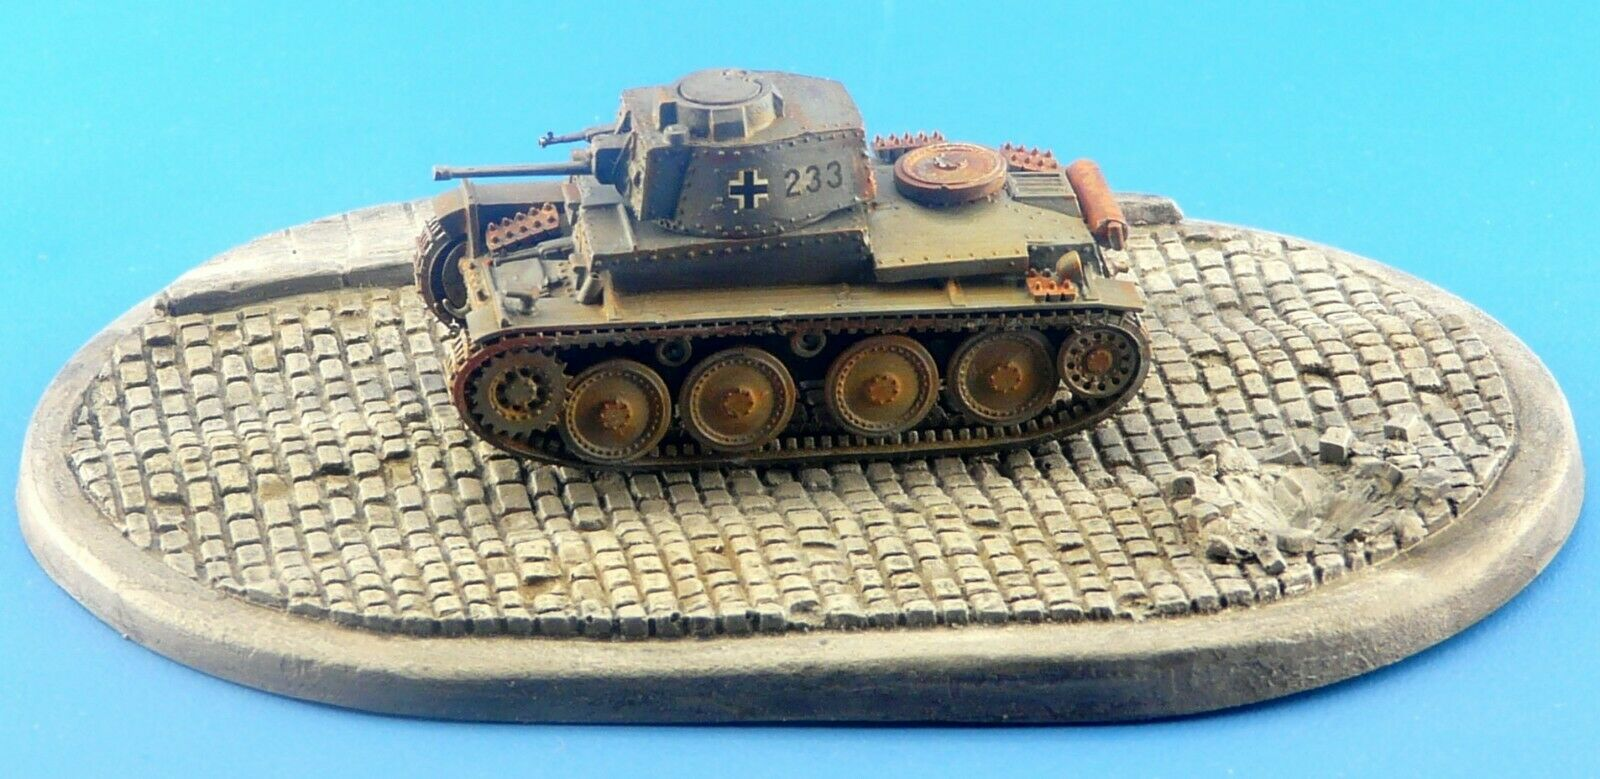 1/72 Smart Oval Diorama Display Base for Scale Model Tanks & Military Vehicles  D5 - redoguk